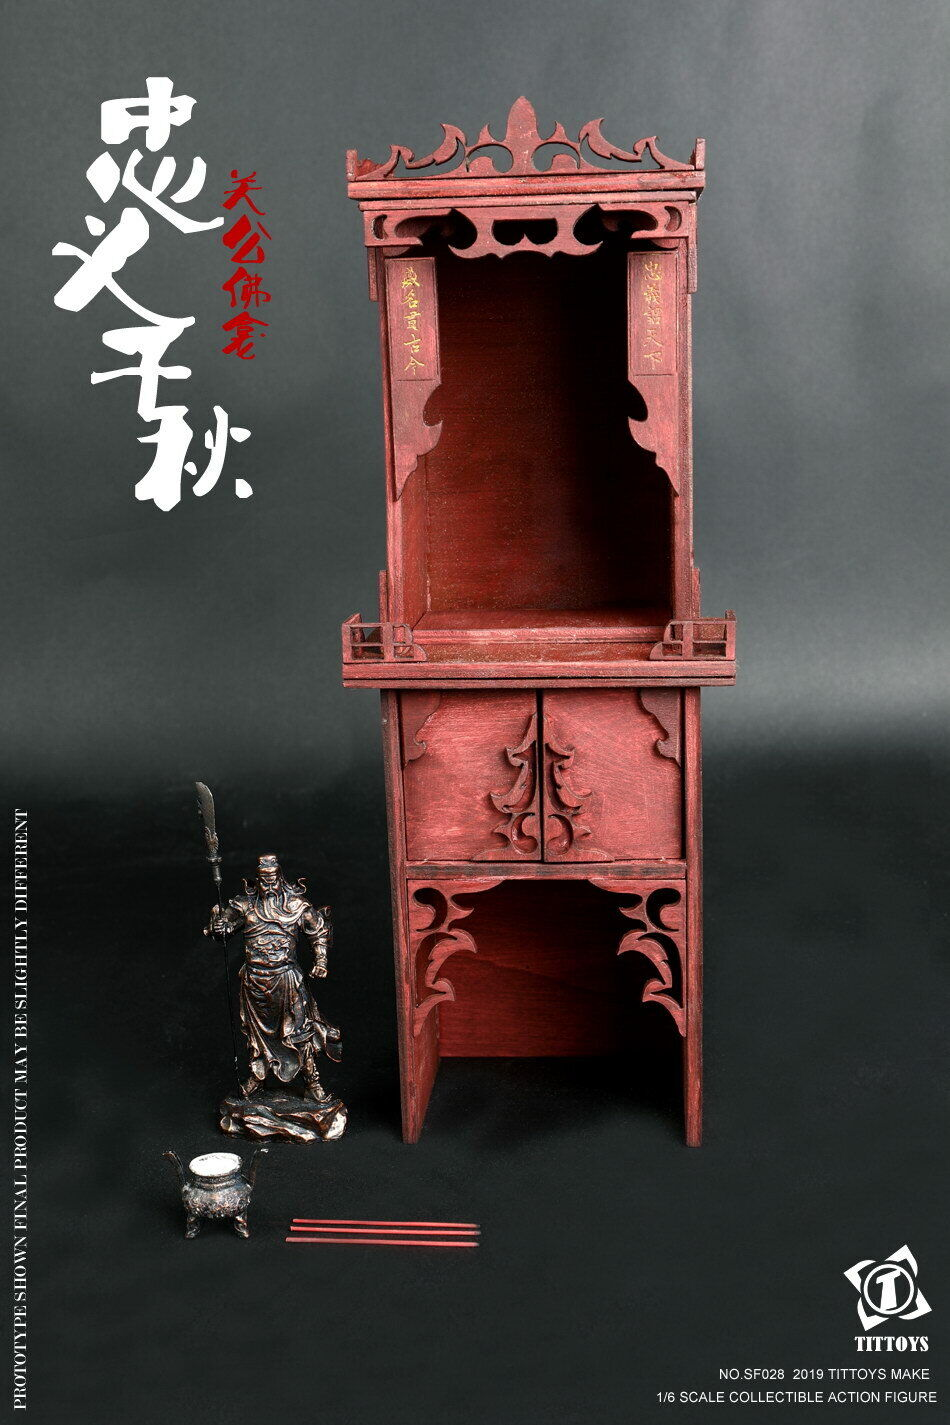 TITTOYS 1 6 Guan Yu Buddha Niche SF028 Deluxe Ver. Figure Toy Faithful Righteous